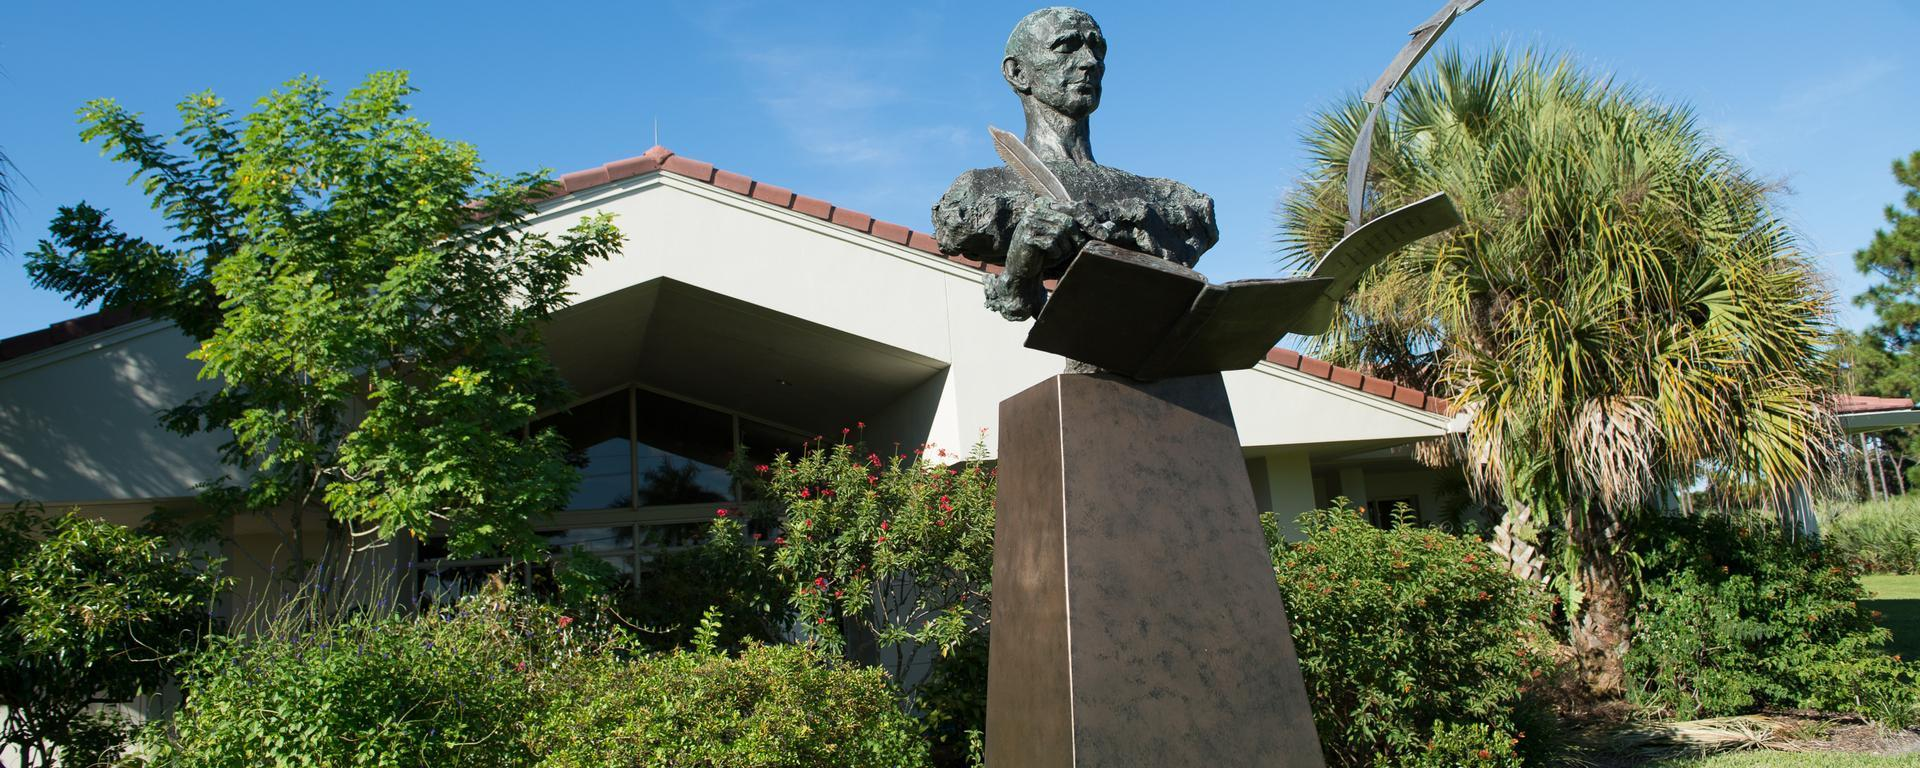 exterior of the hoke library in jensen beach